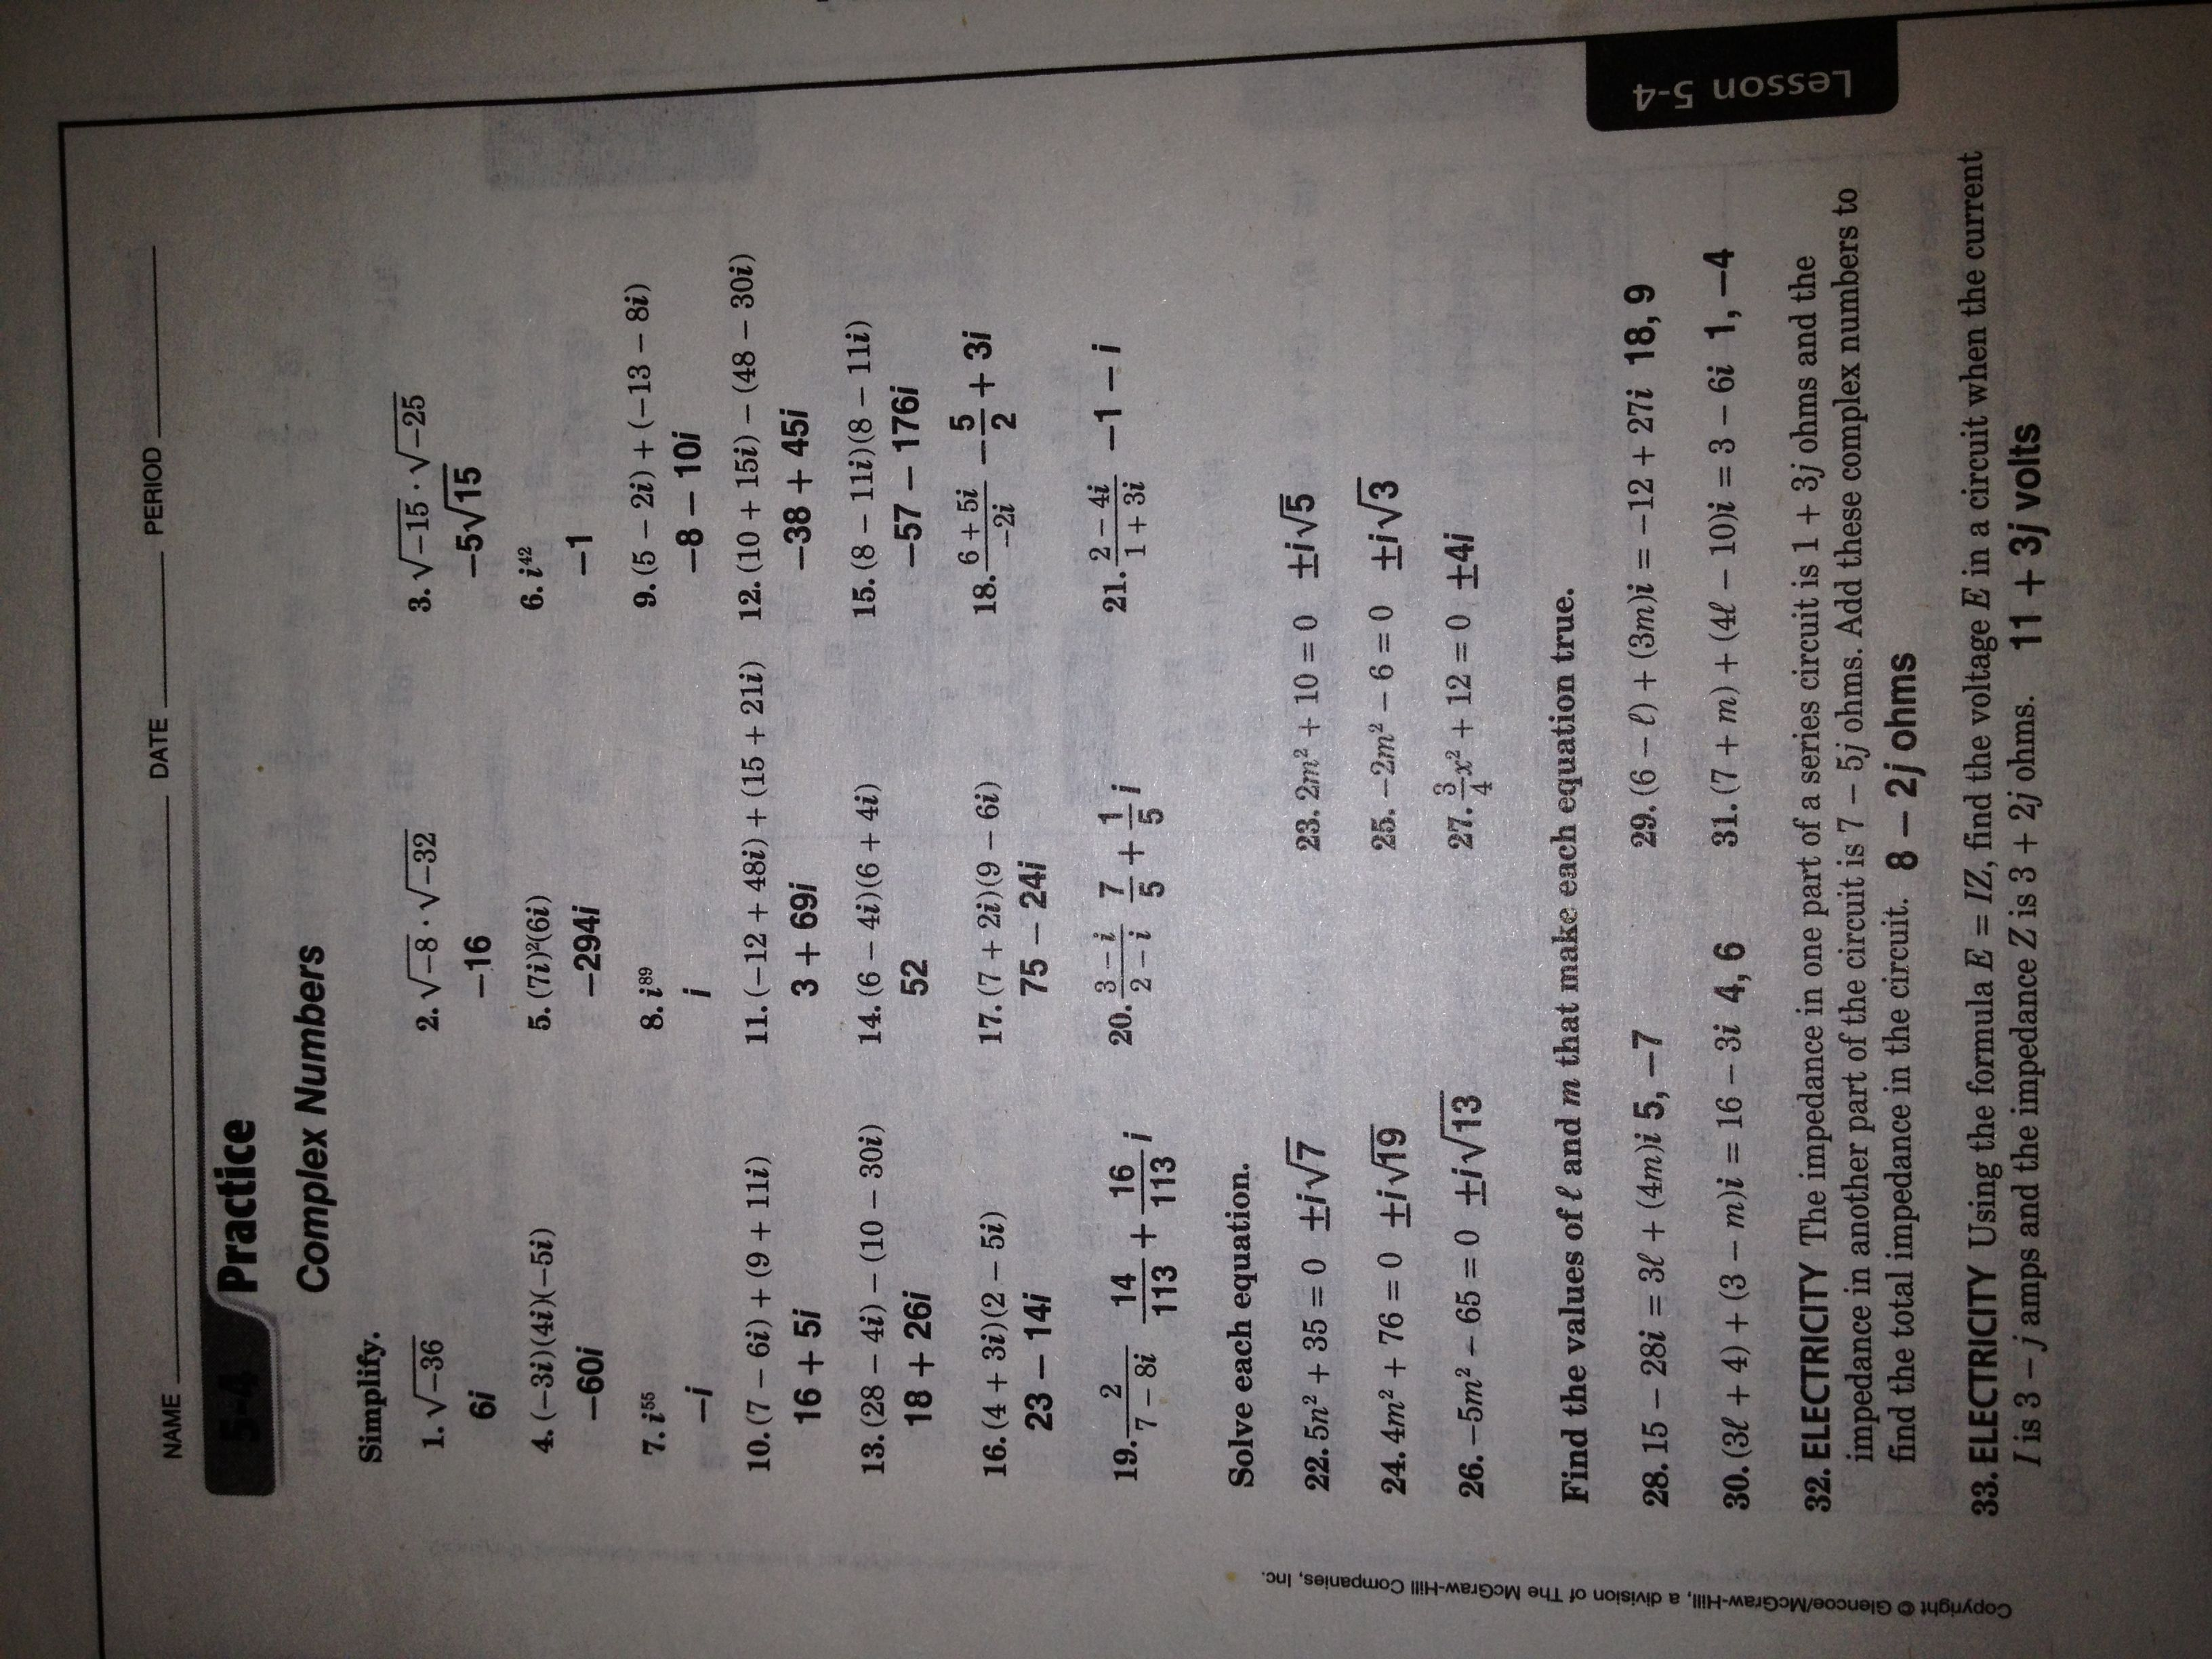 Holt mcdougal mathematics homework help Ssays for sale – Holt Middle School Math Worksheets